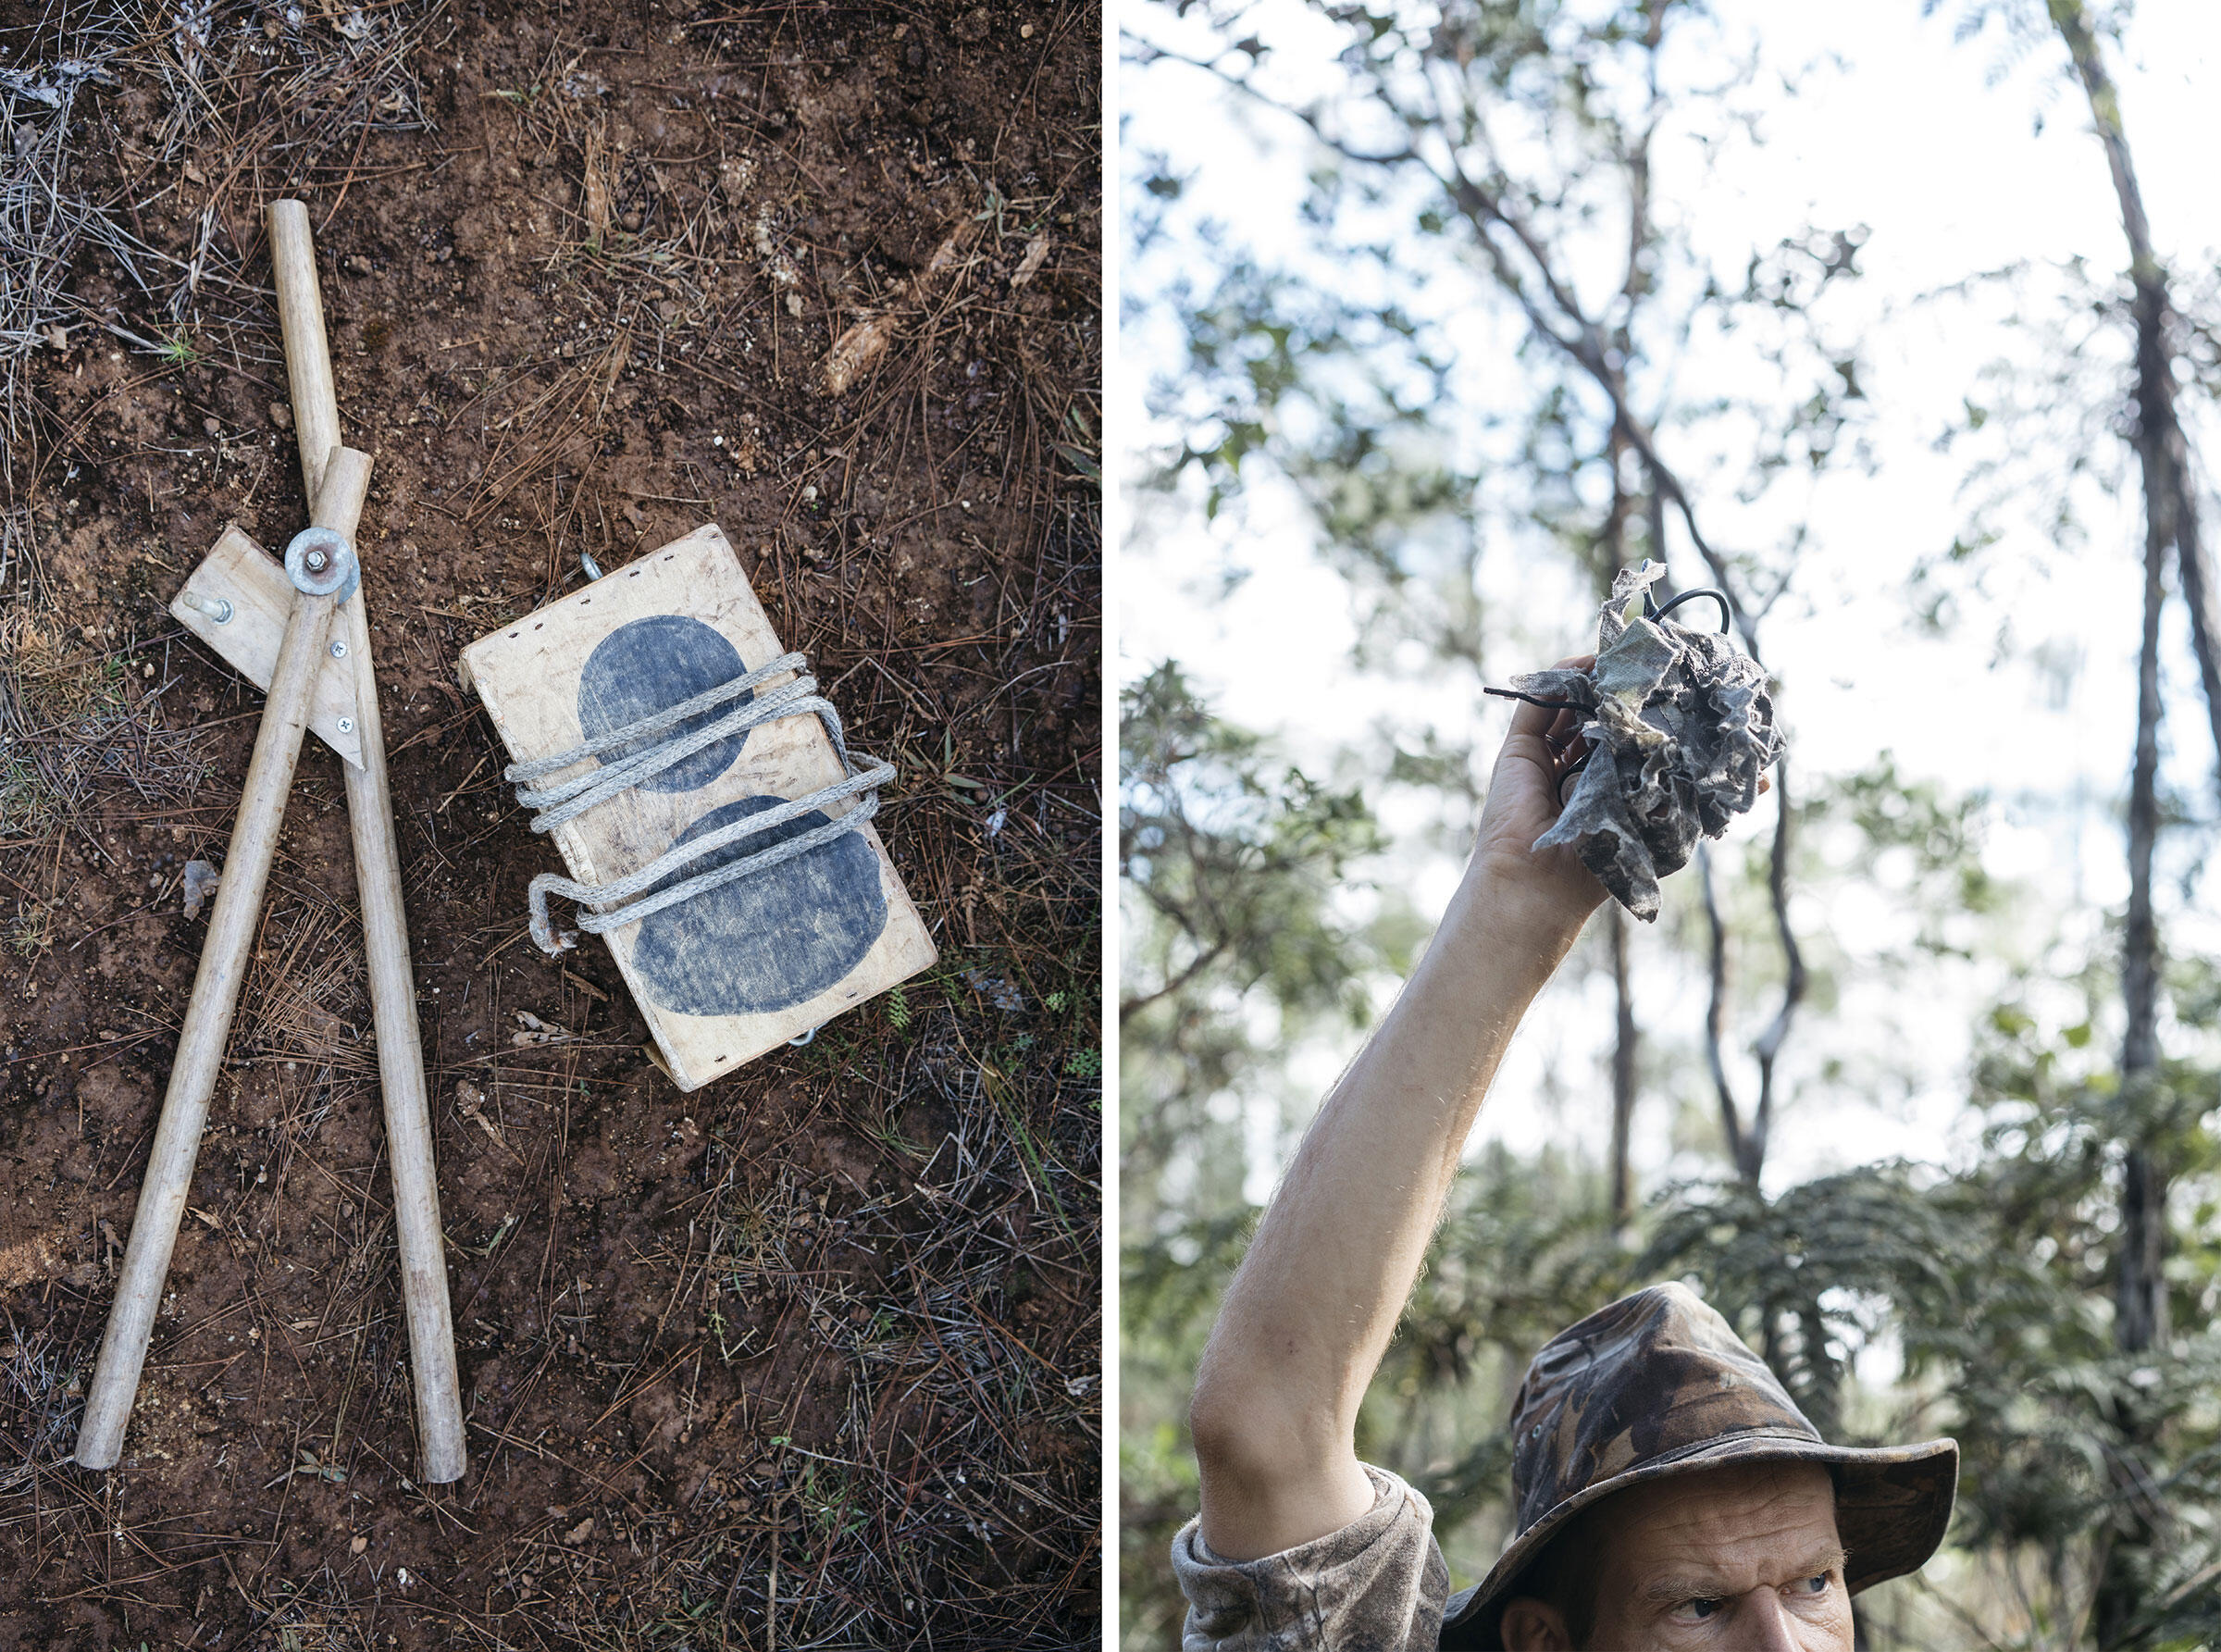 From left: The double knocker, which mimicks the sound an Ivory-billed Woodpecker would make on a pine tree; Lammertink broadcasts the feedback call of the Ivory-billed Woodpecker in Humbolt National Park. Photos: Greg Kahn